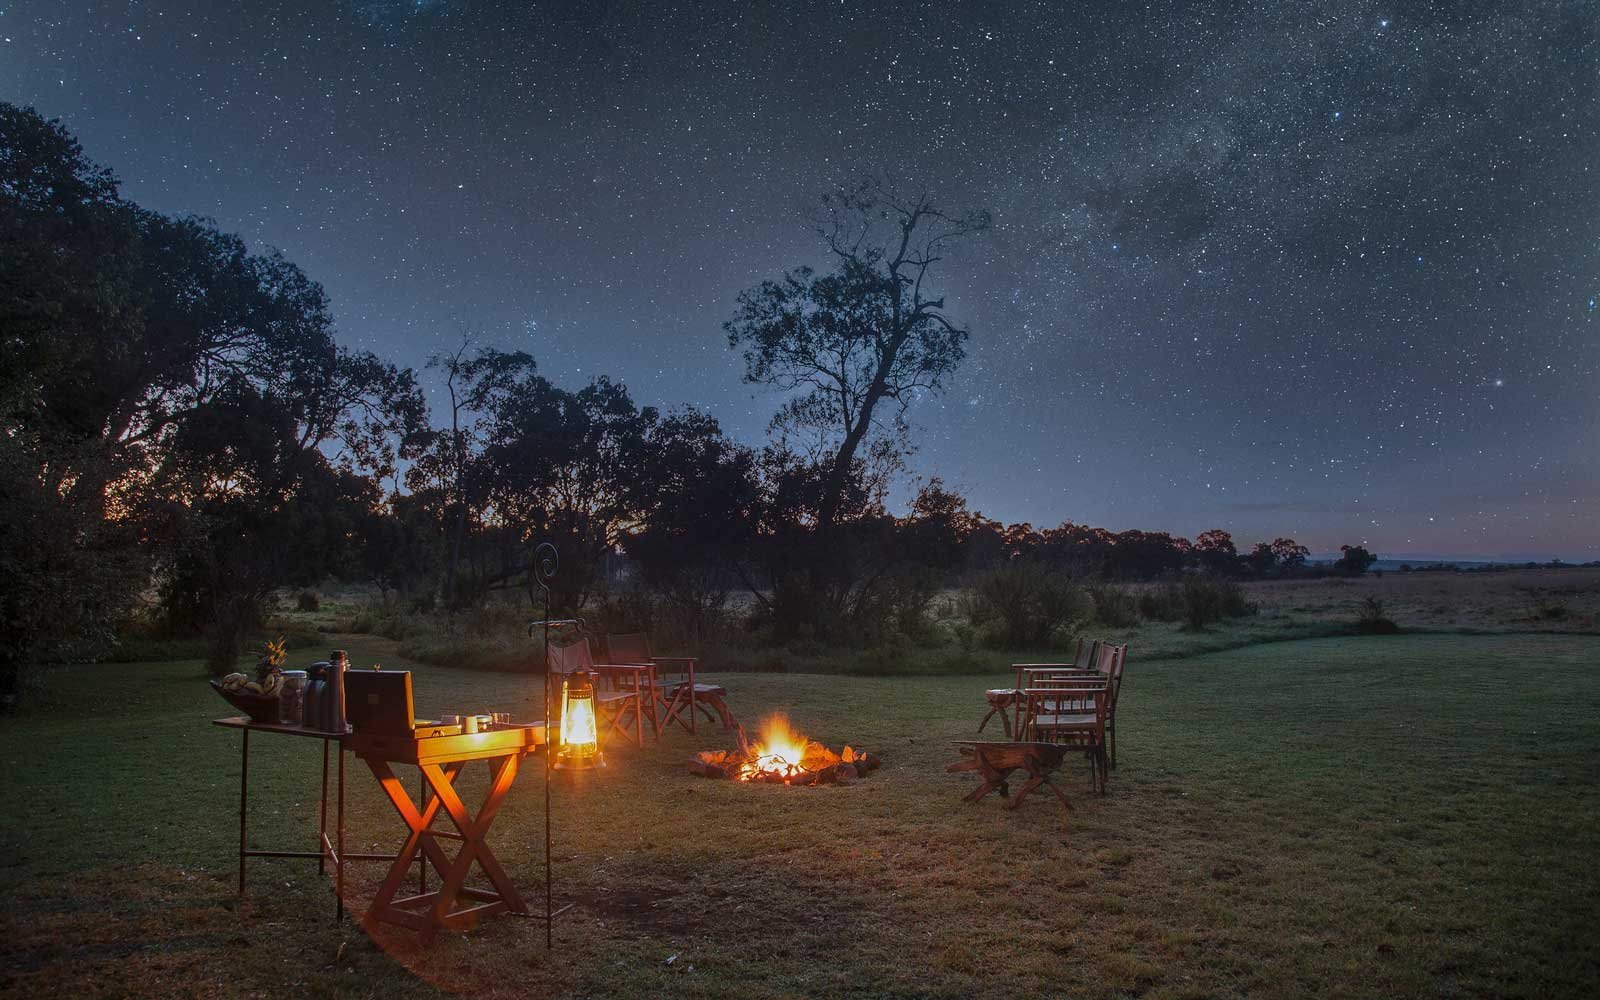 A safari camp at night under starry sky